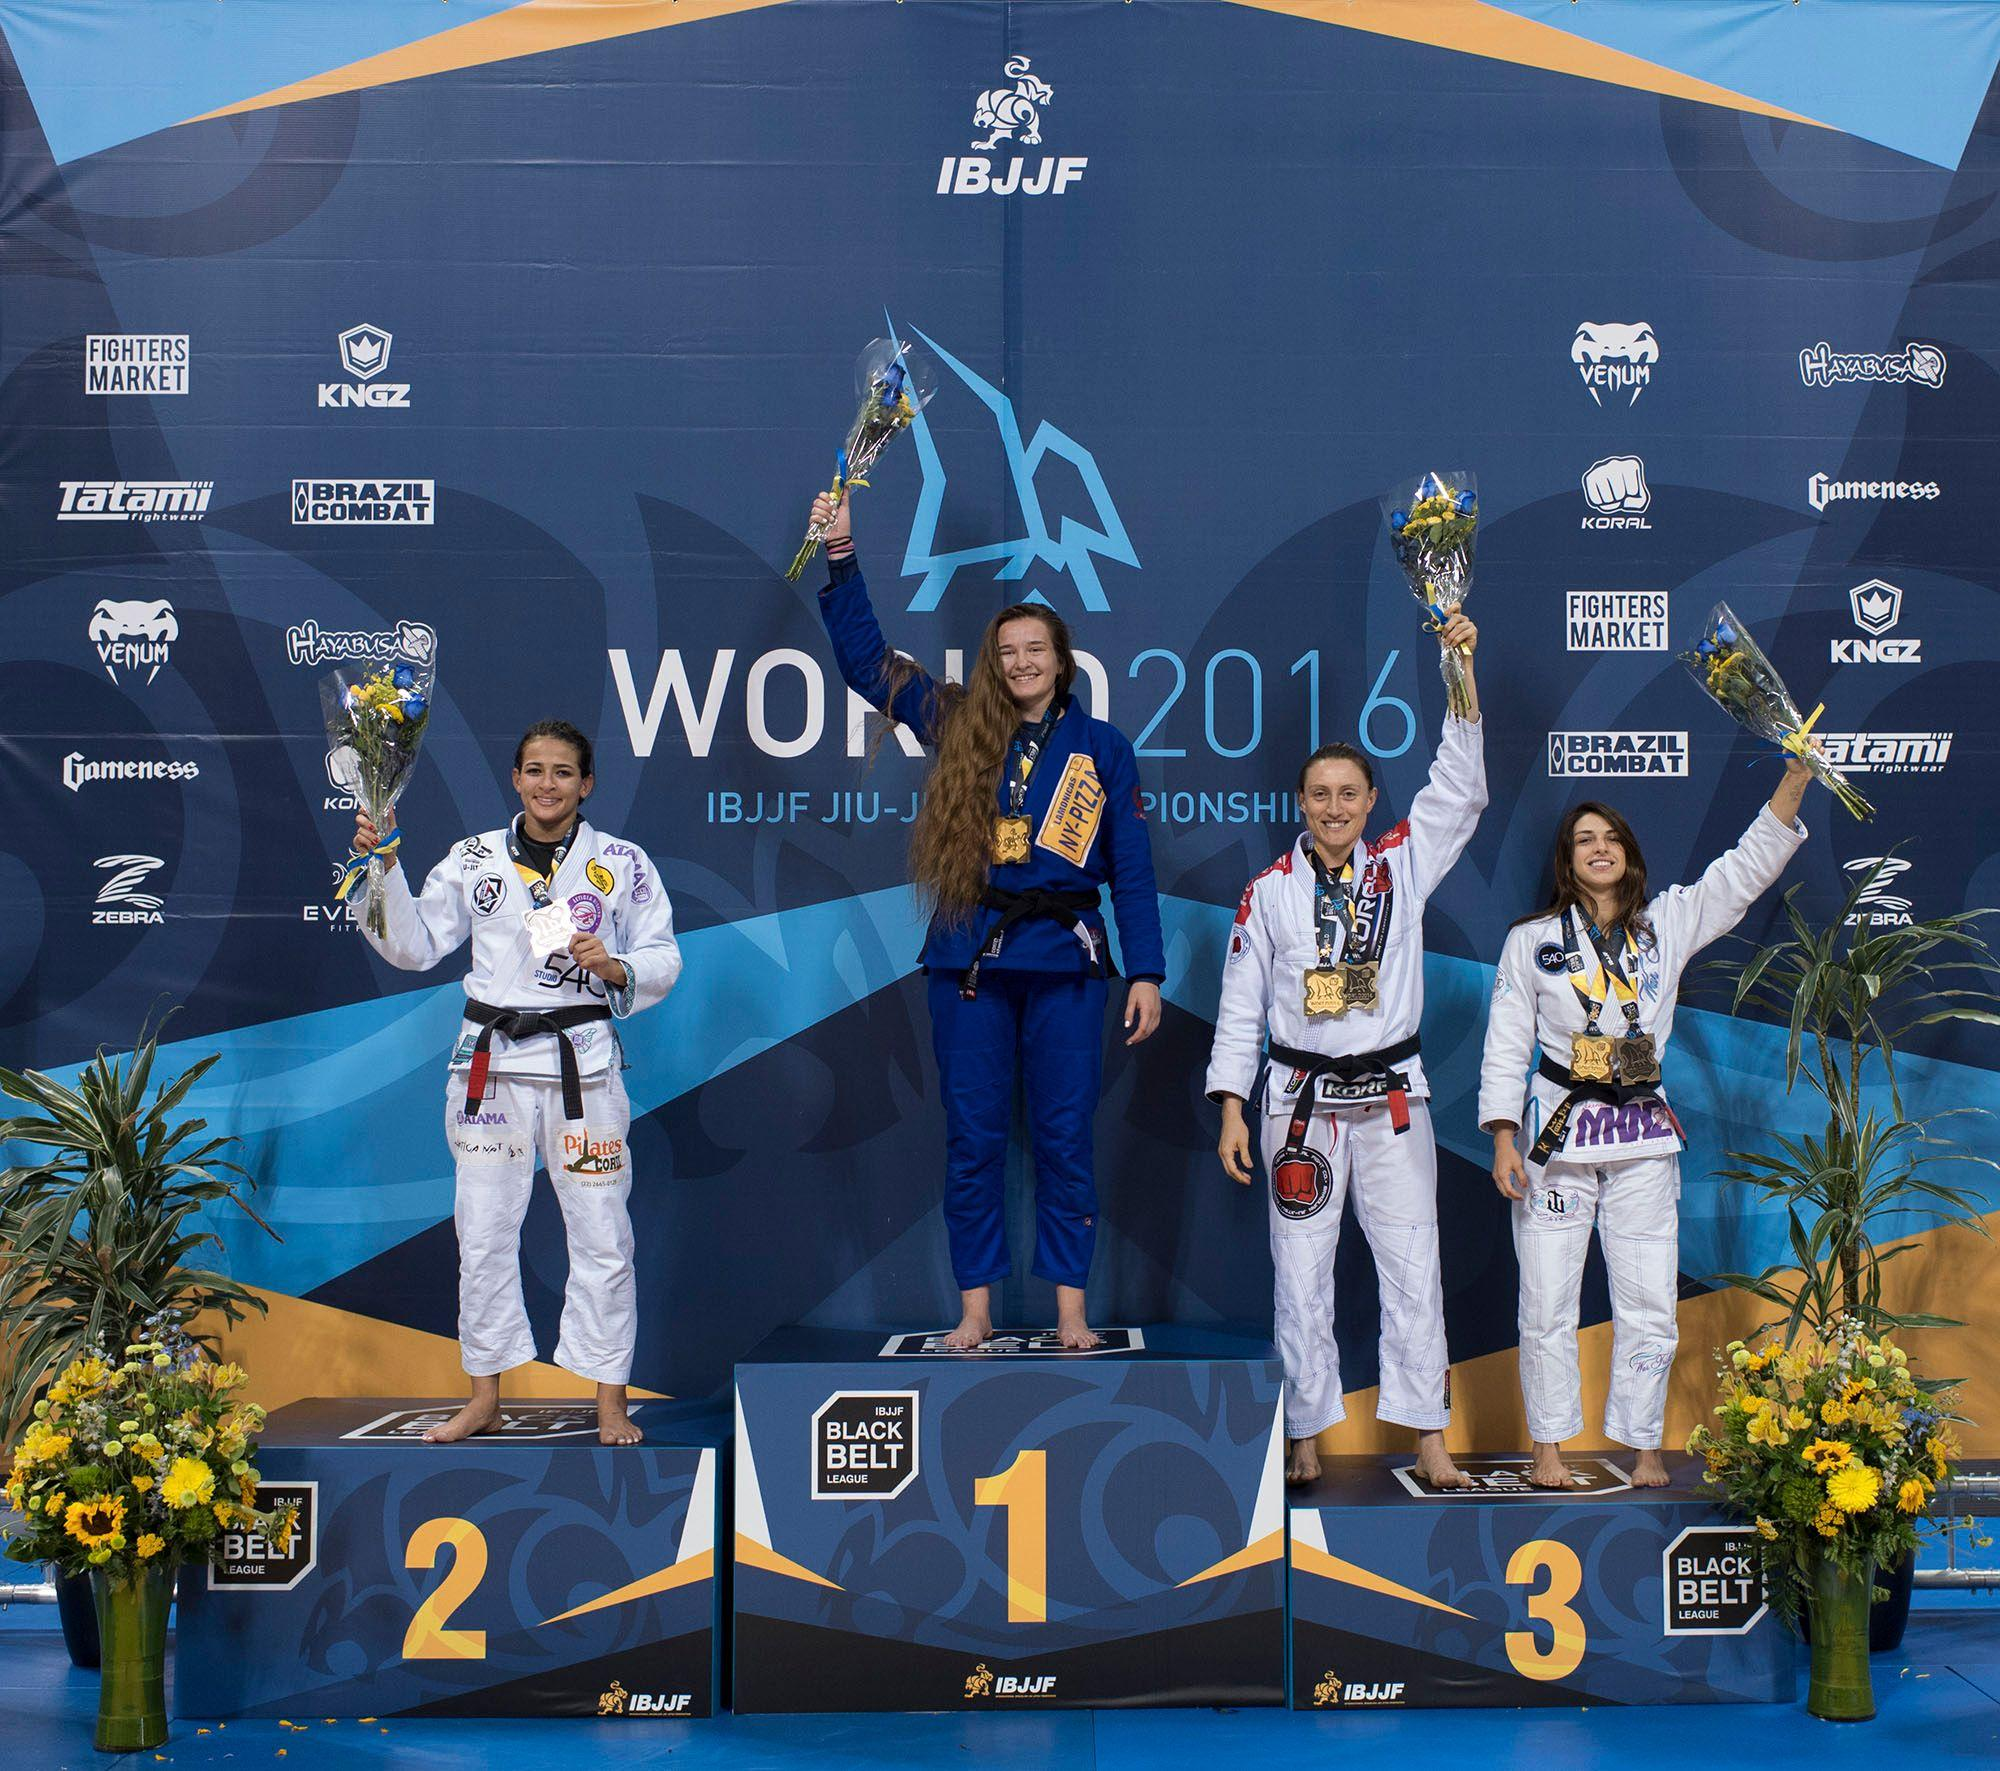 BJJ Worlds 2016: complete results by @gallerr | Gallerr